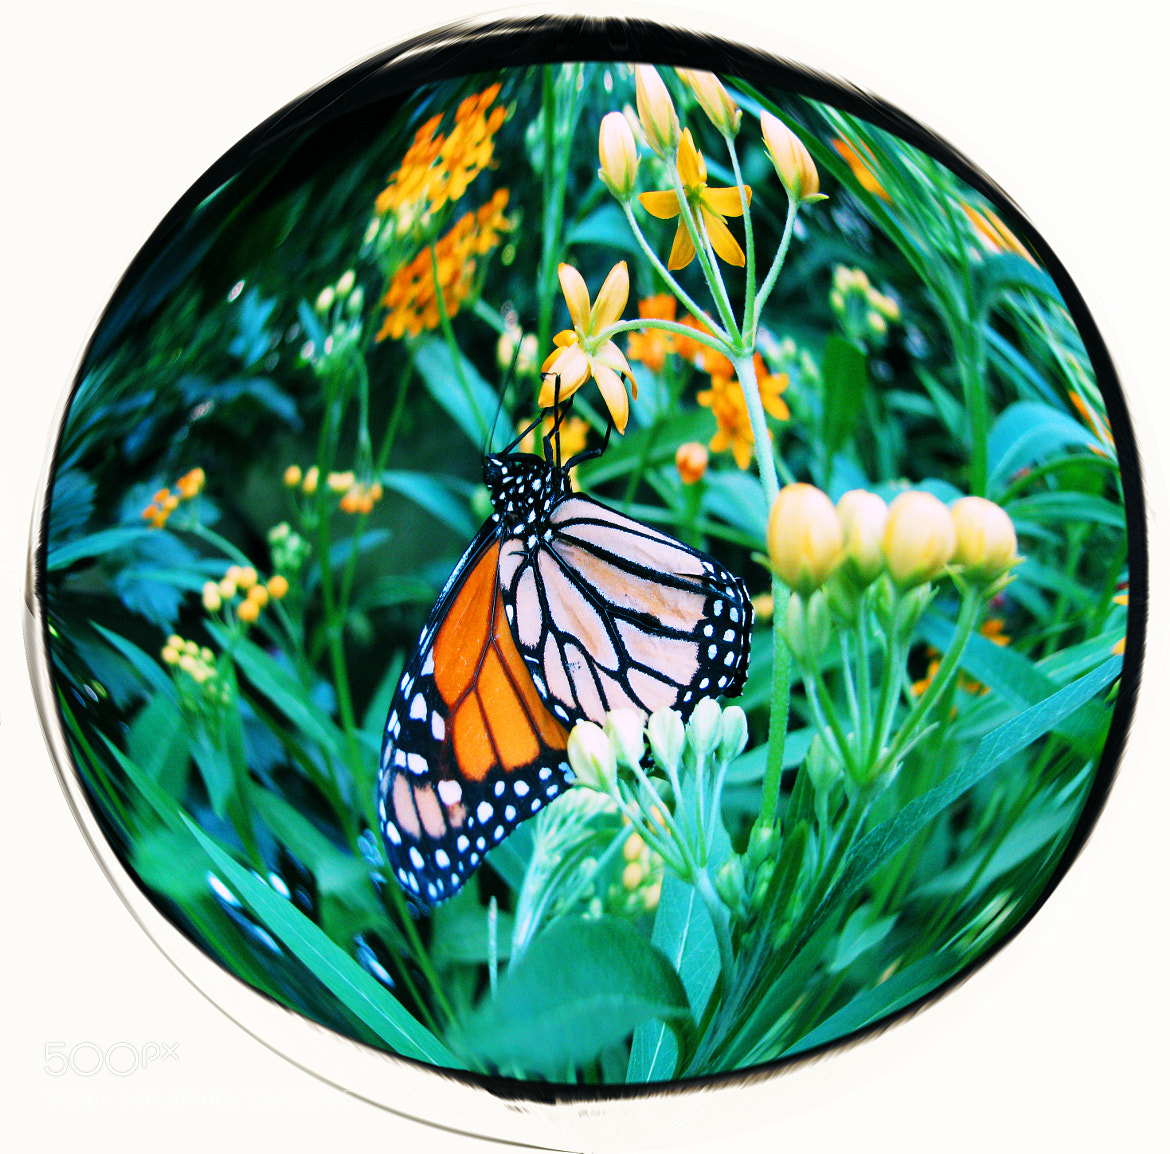 Photograph butterflyglobe by mel mayse on 500px